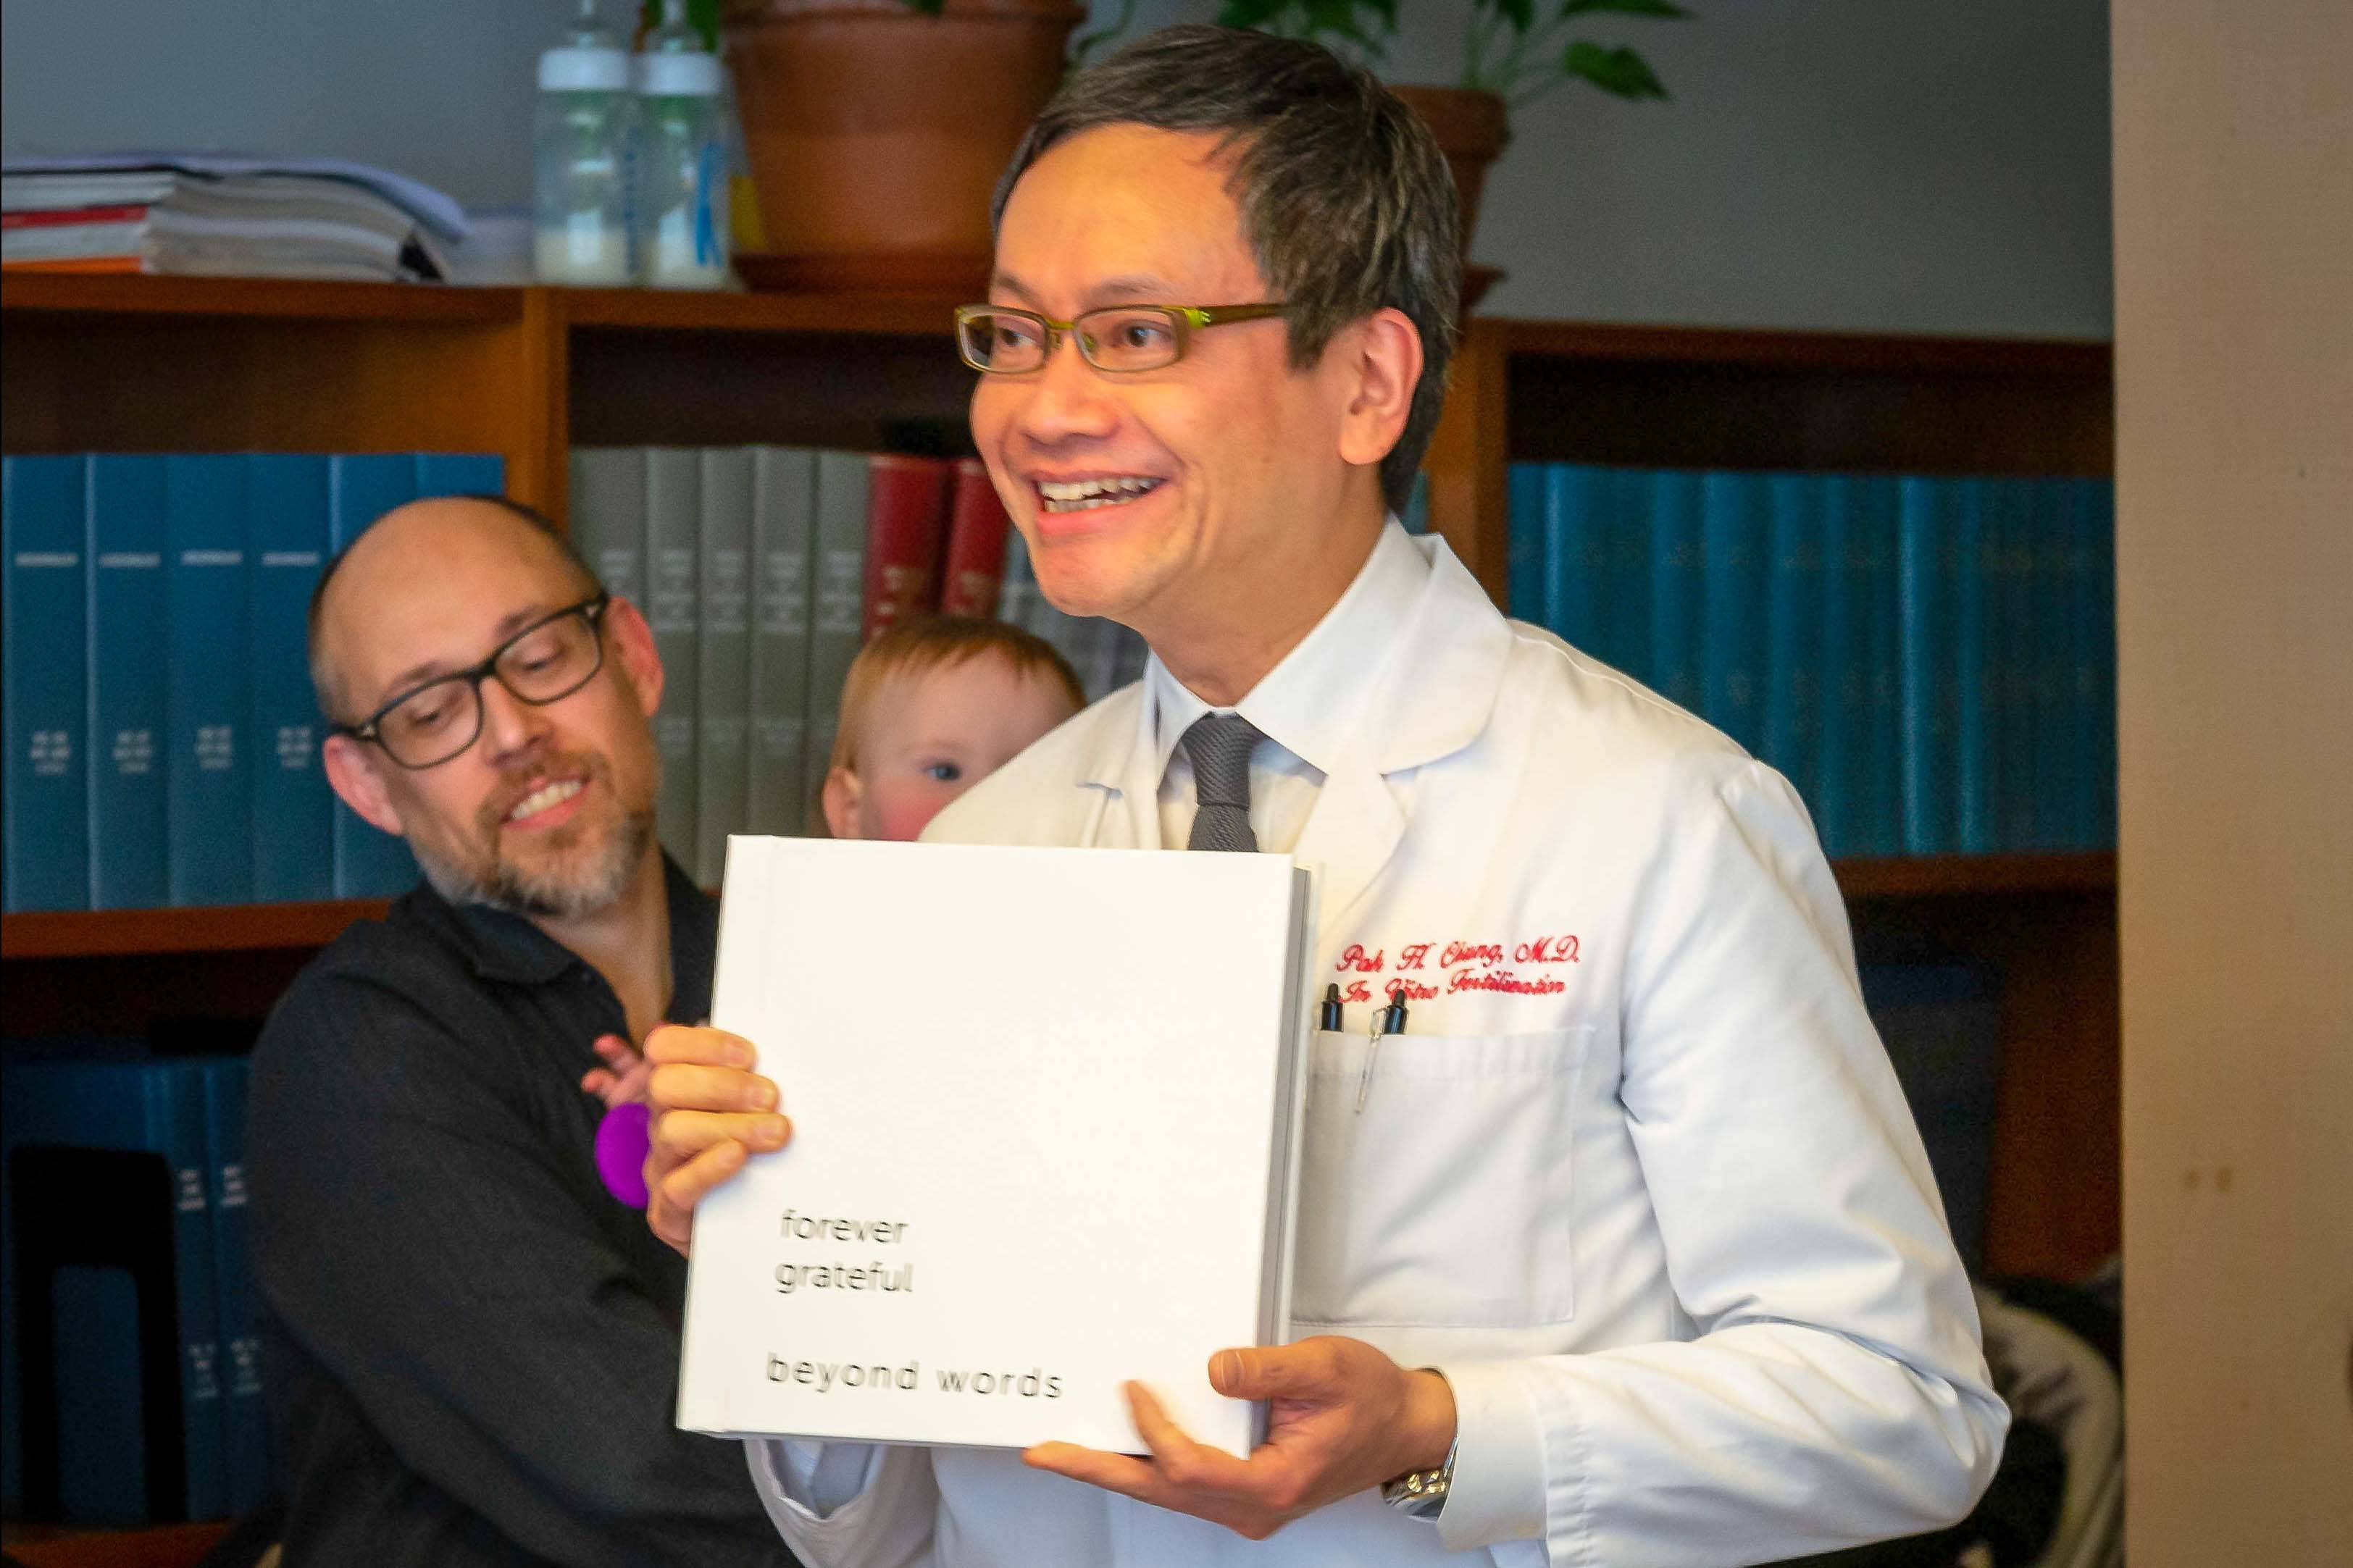 Dr. Pak H. Chung poses with an album gifted by patients.